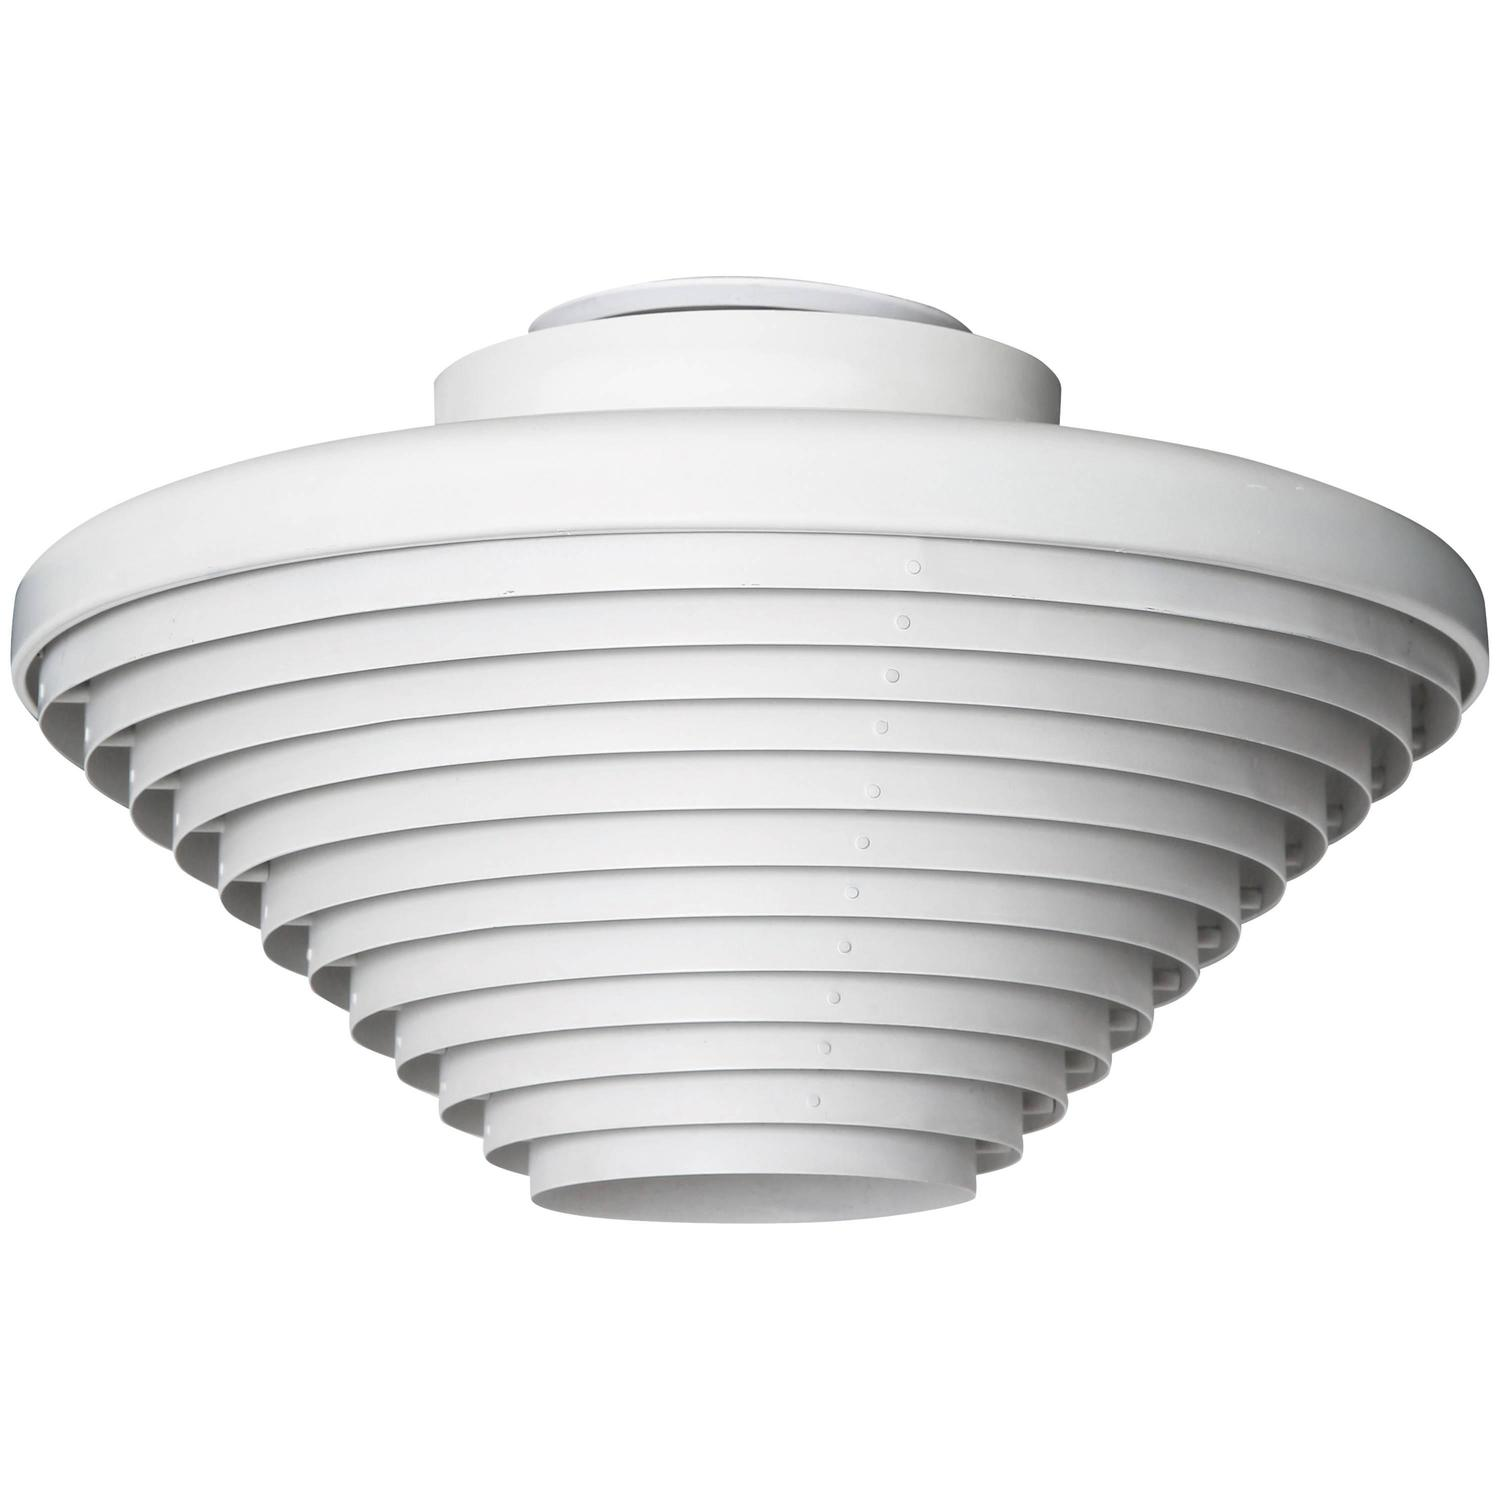 Alvar Aalto A622 Ceiling Light. Rare First Valaistustyo Edition, Finland,  1950s For Sale At 1stdibs